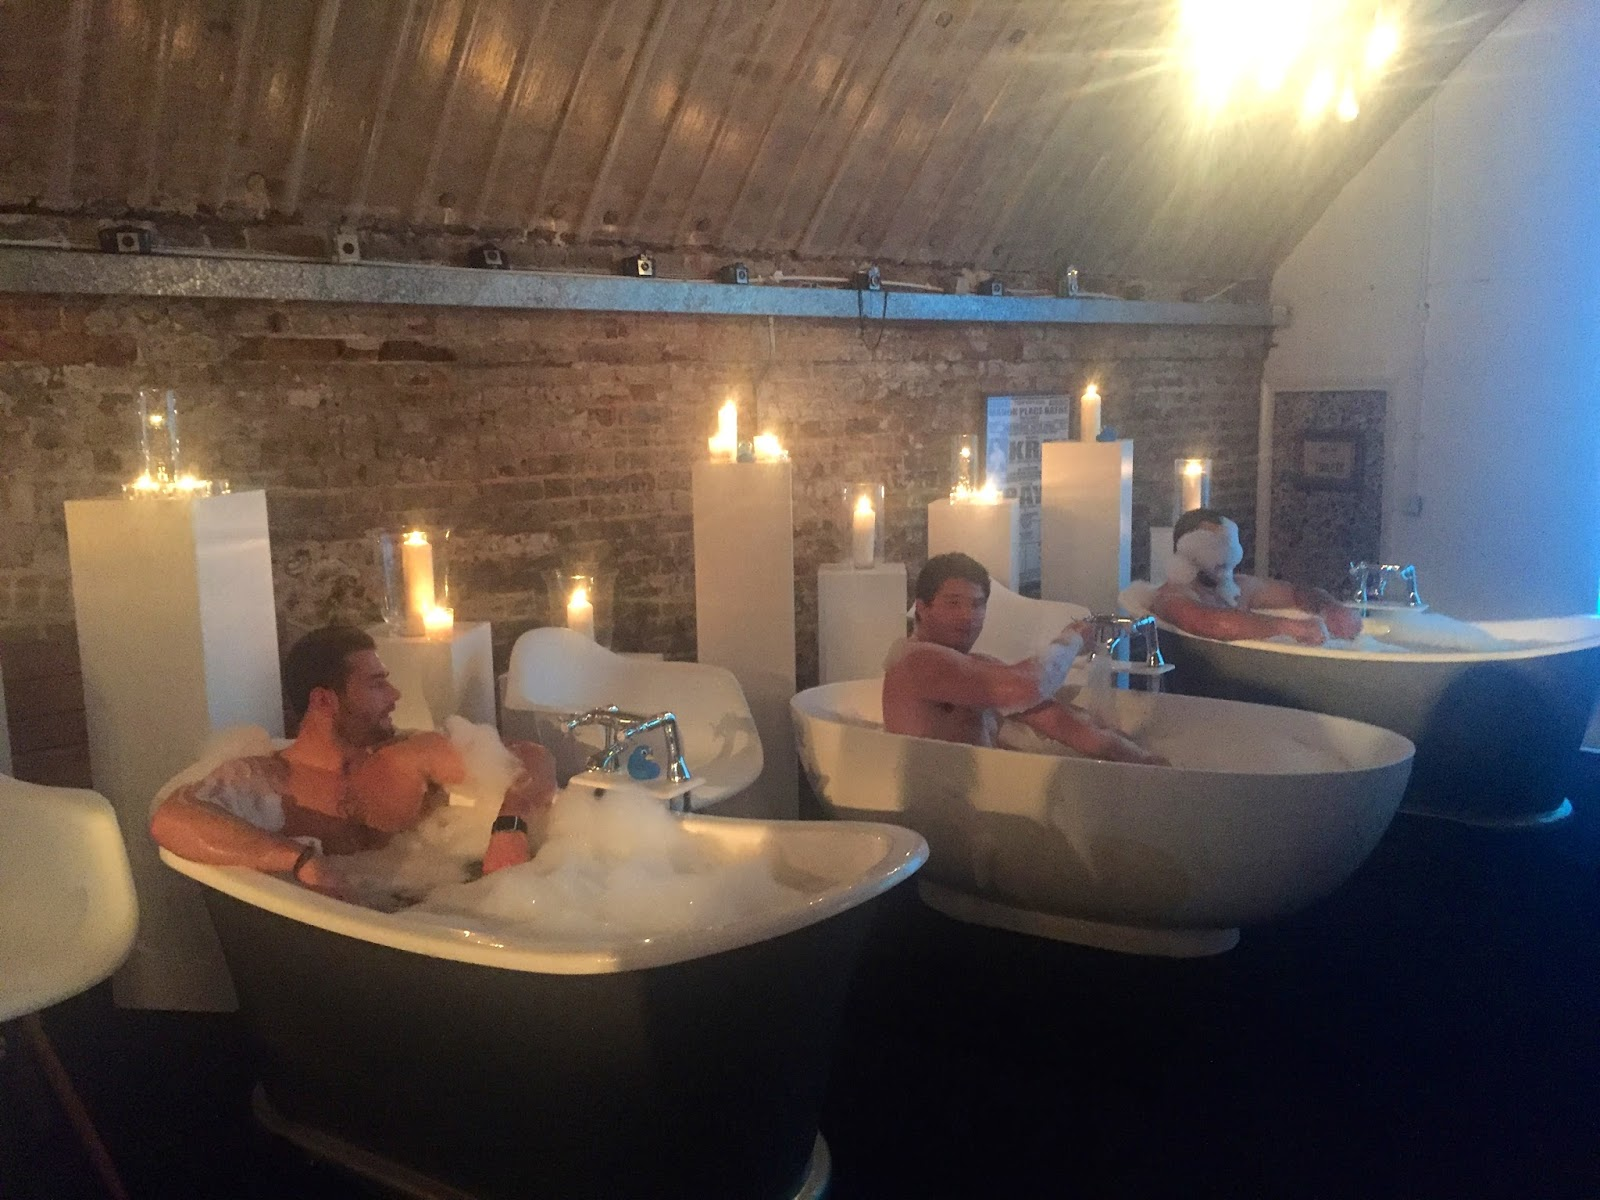 #BubblesBathBar